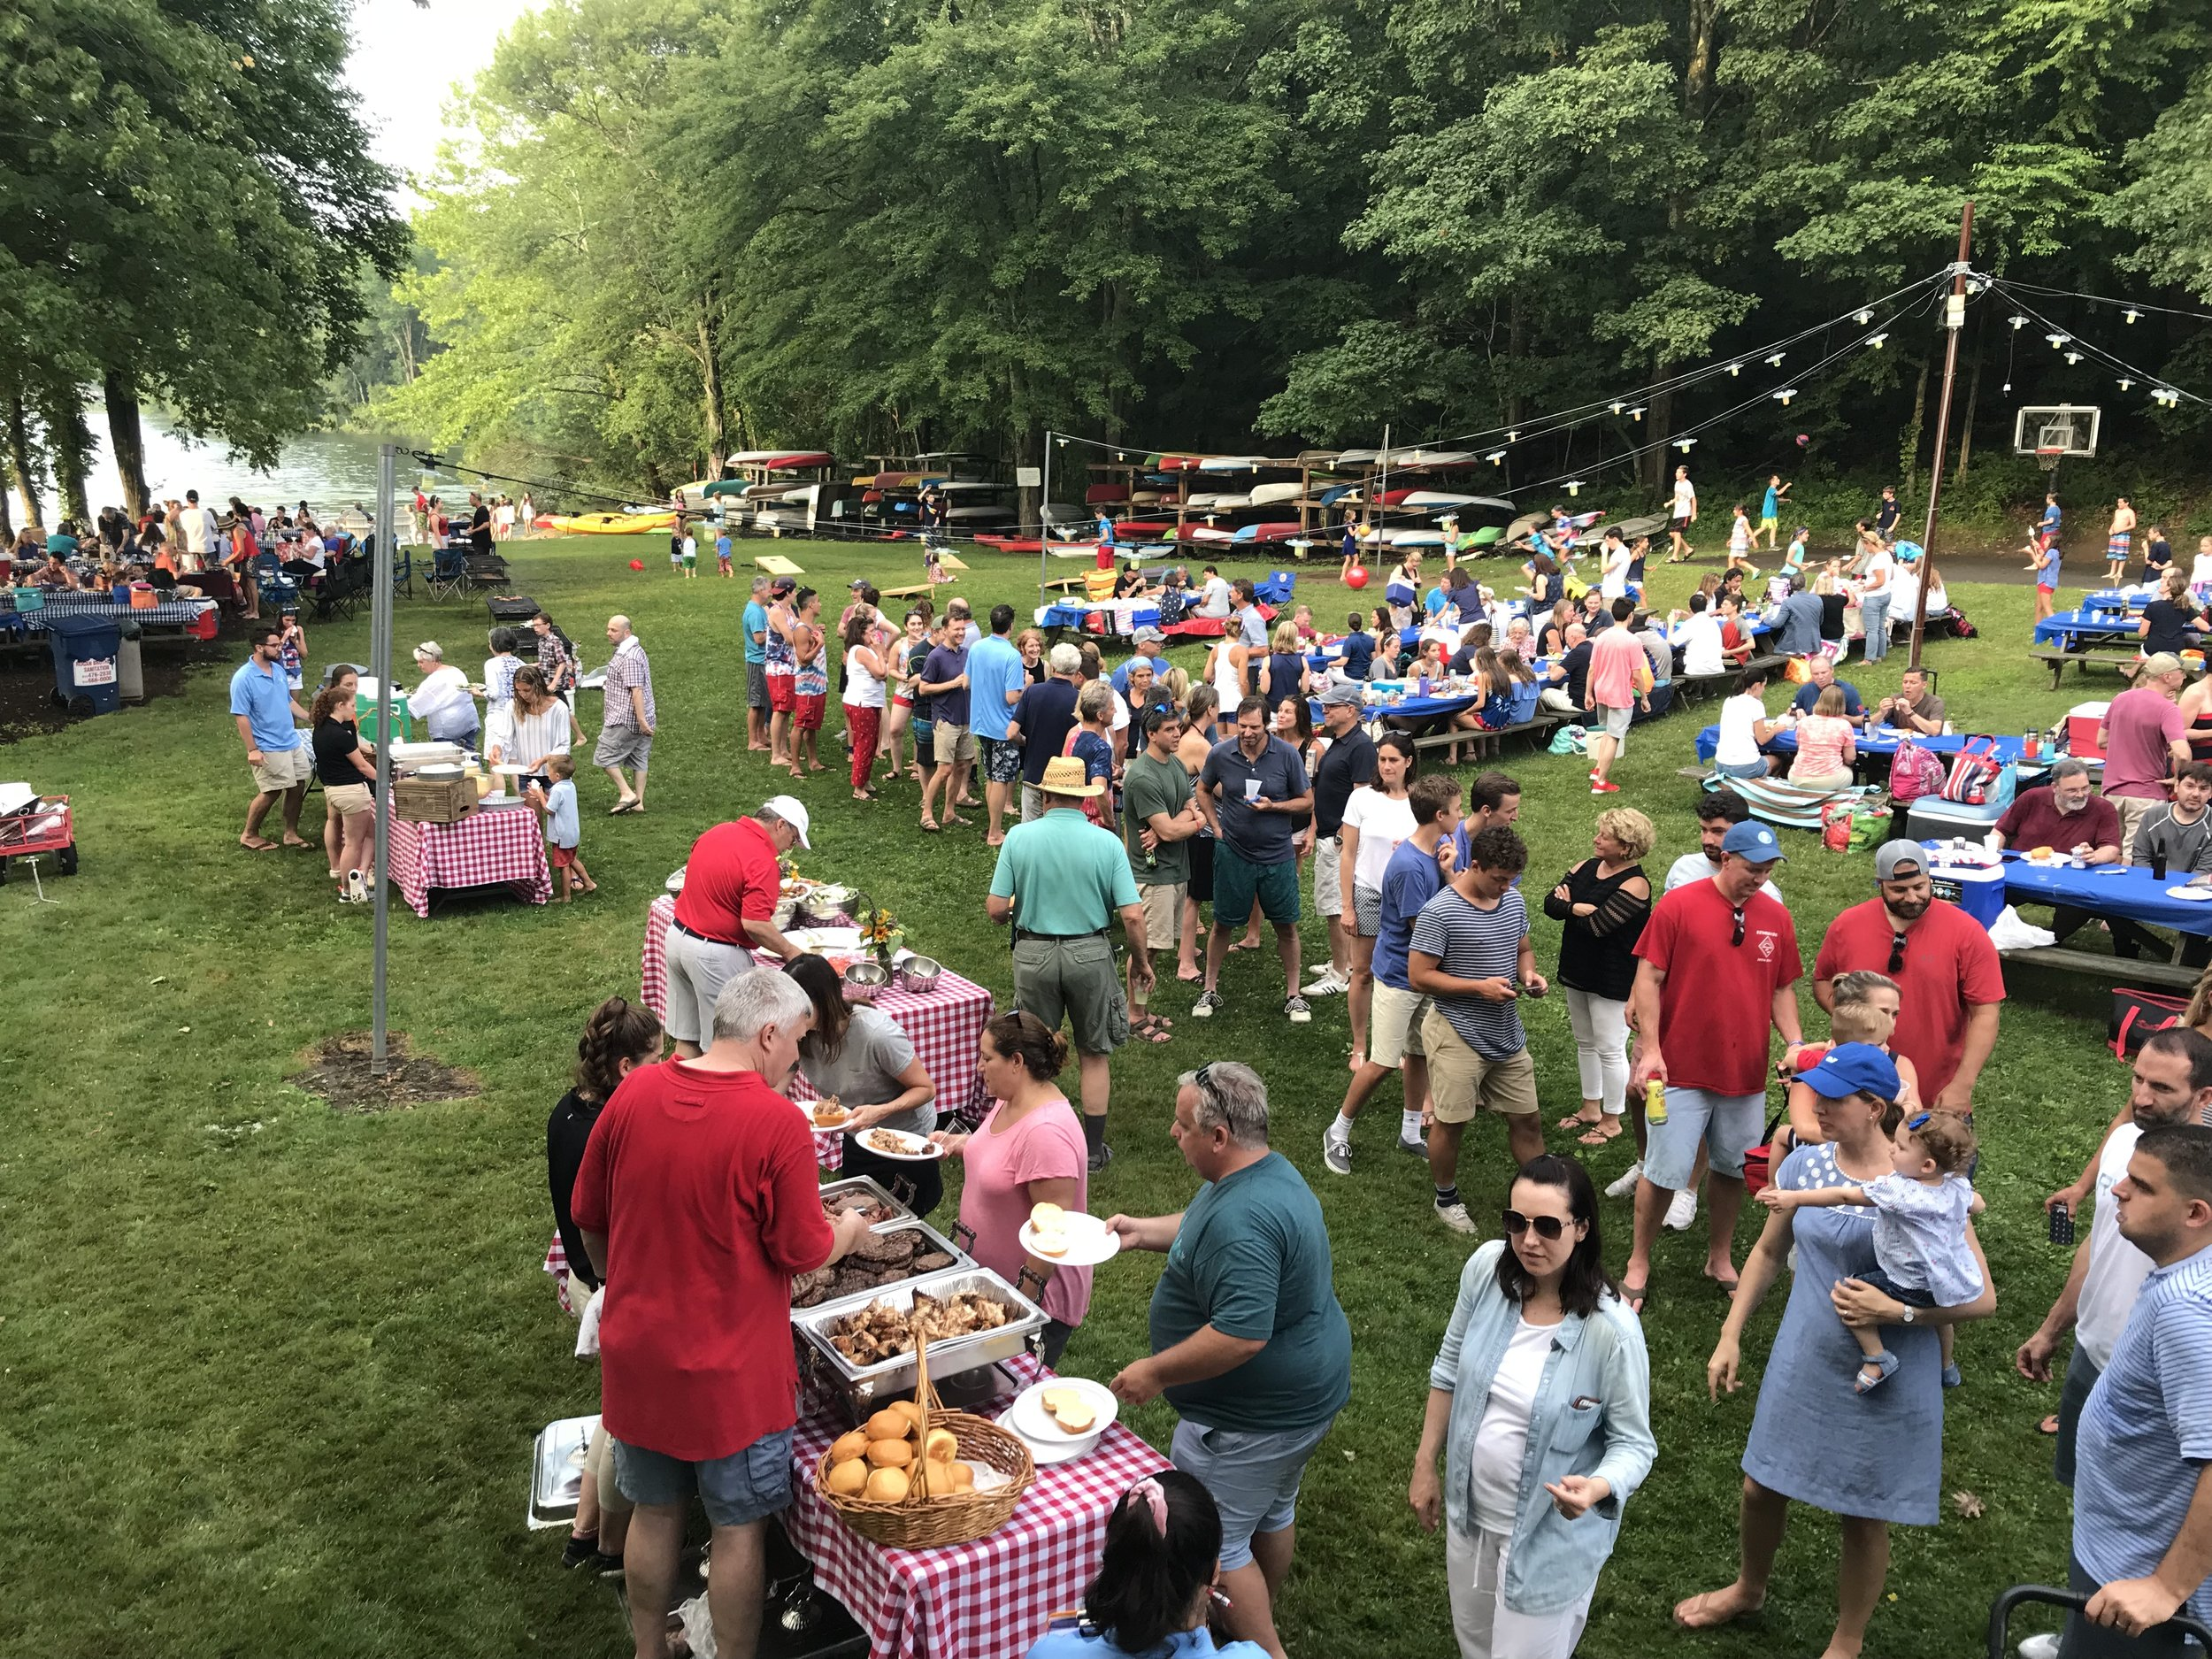 Classic bbq parties - Celebrate with food everyone loves - Southern BBQPerfect option for graduations, birthdays and summer partiesGreat option for feeding a large crowd with a varied menu cooked on site.Delicious non meat options, we accommodate any dietary restrictions!